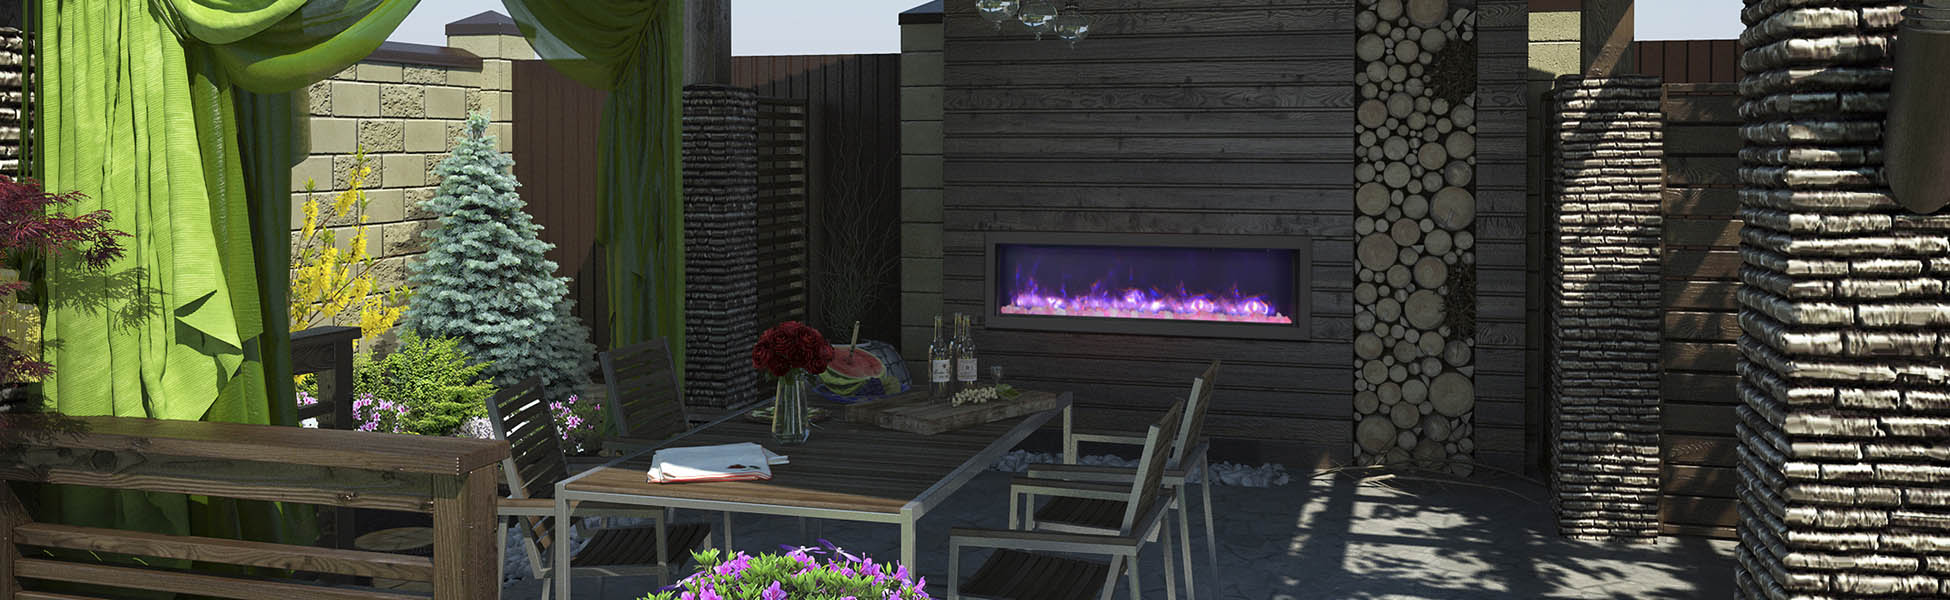 admin100 author at amantii electric fireplaces